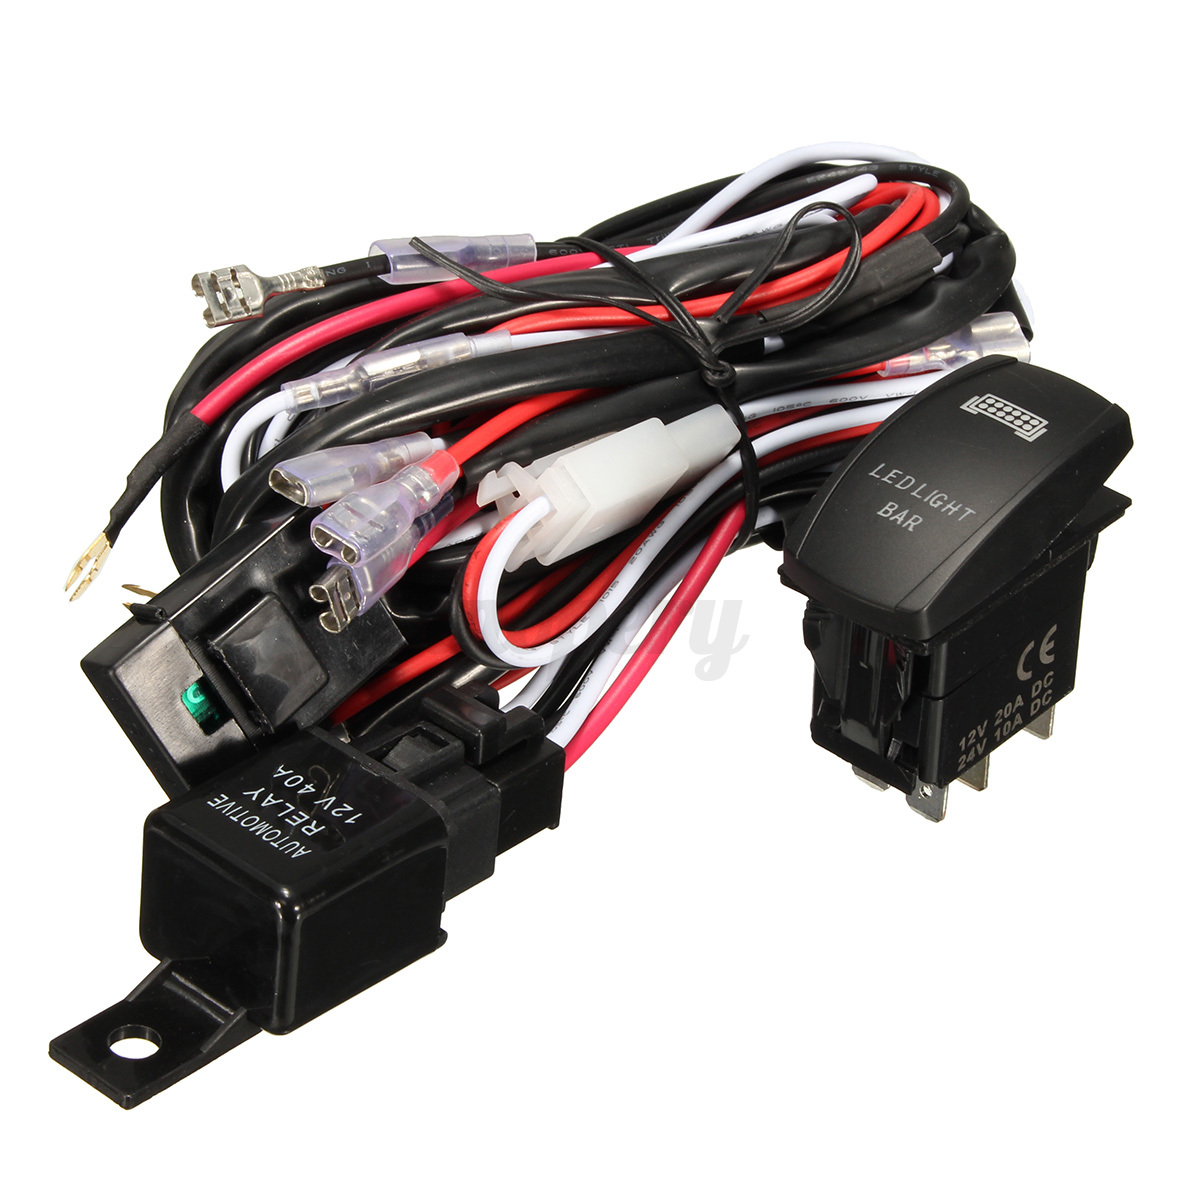 wiring harness cable led light bar laser rocker switch 12v ... polaris rzr led light bar wiring harness #2